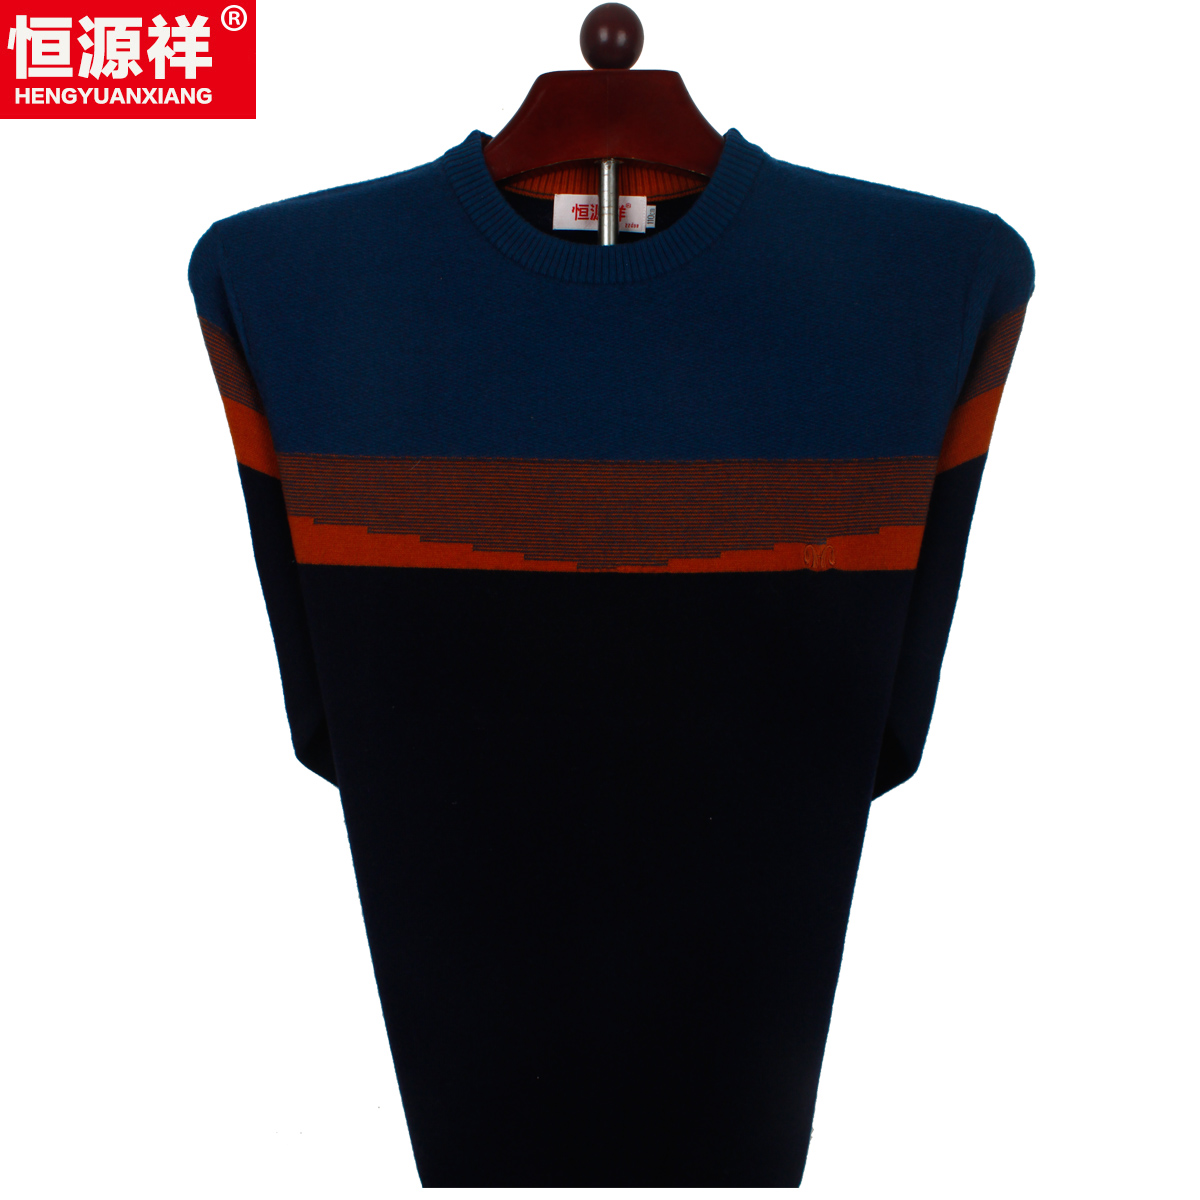 Heng yuan xiang pure new wool spell color sweater men young father fitted sweater heng yuan xiang pure wool sweater men